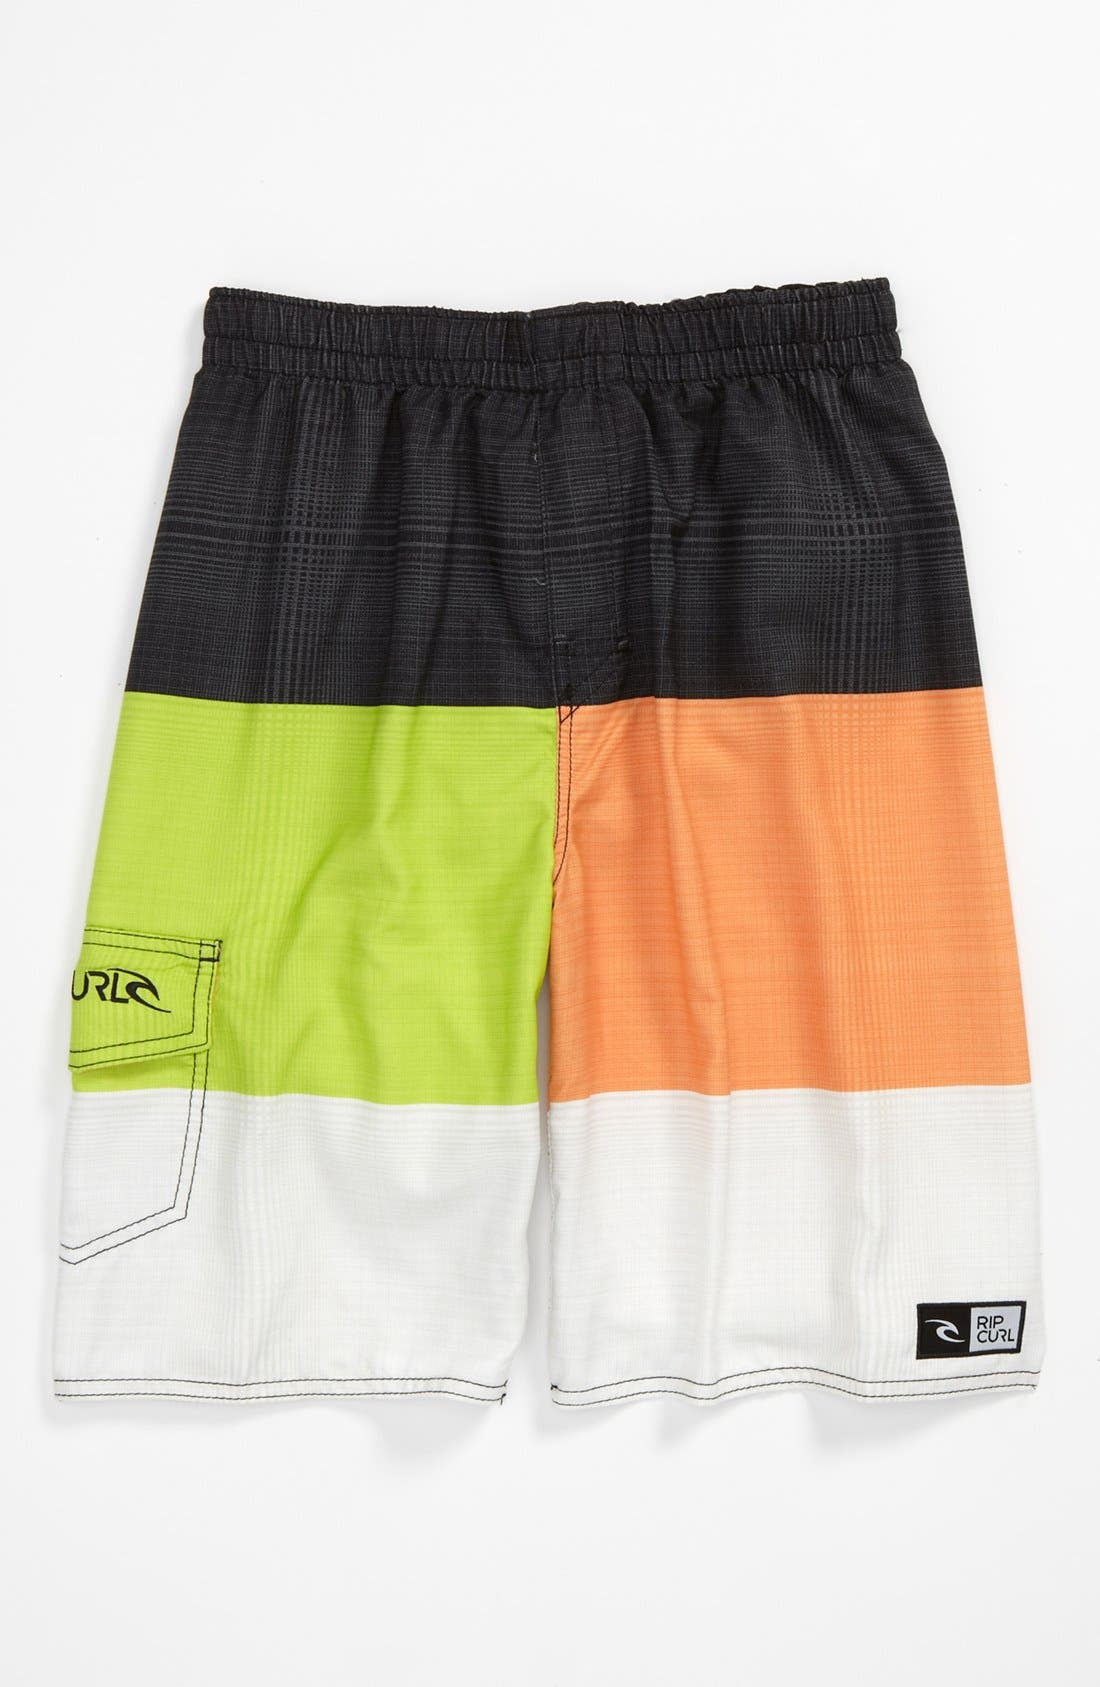 Alternate Image 1 Selected - Rip Curl 'Aggrosections' Volley Swim Trunks (Big Boys)